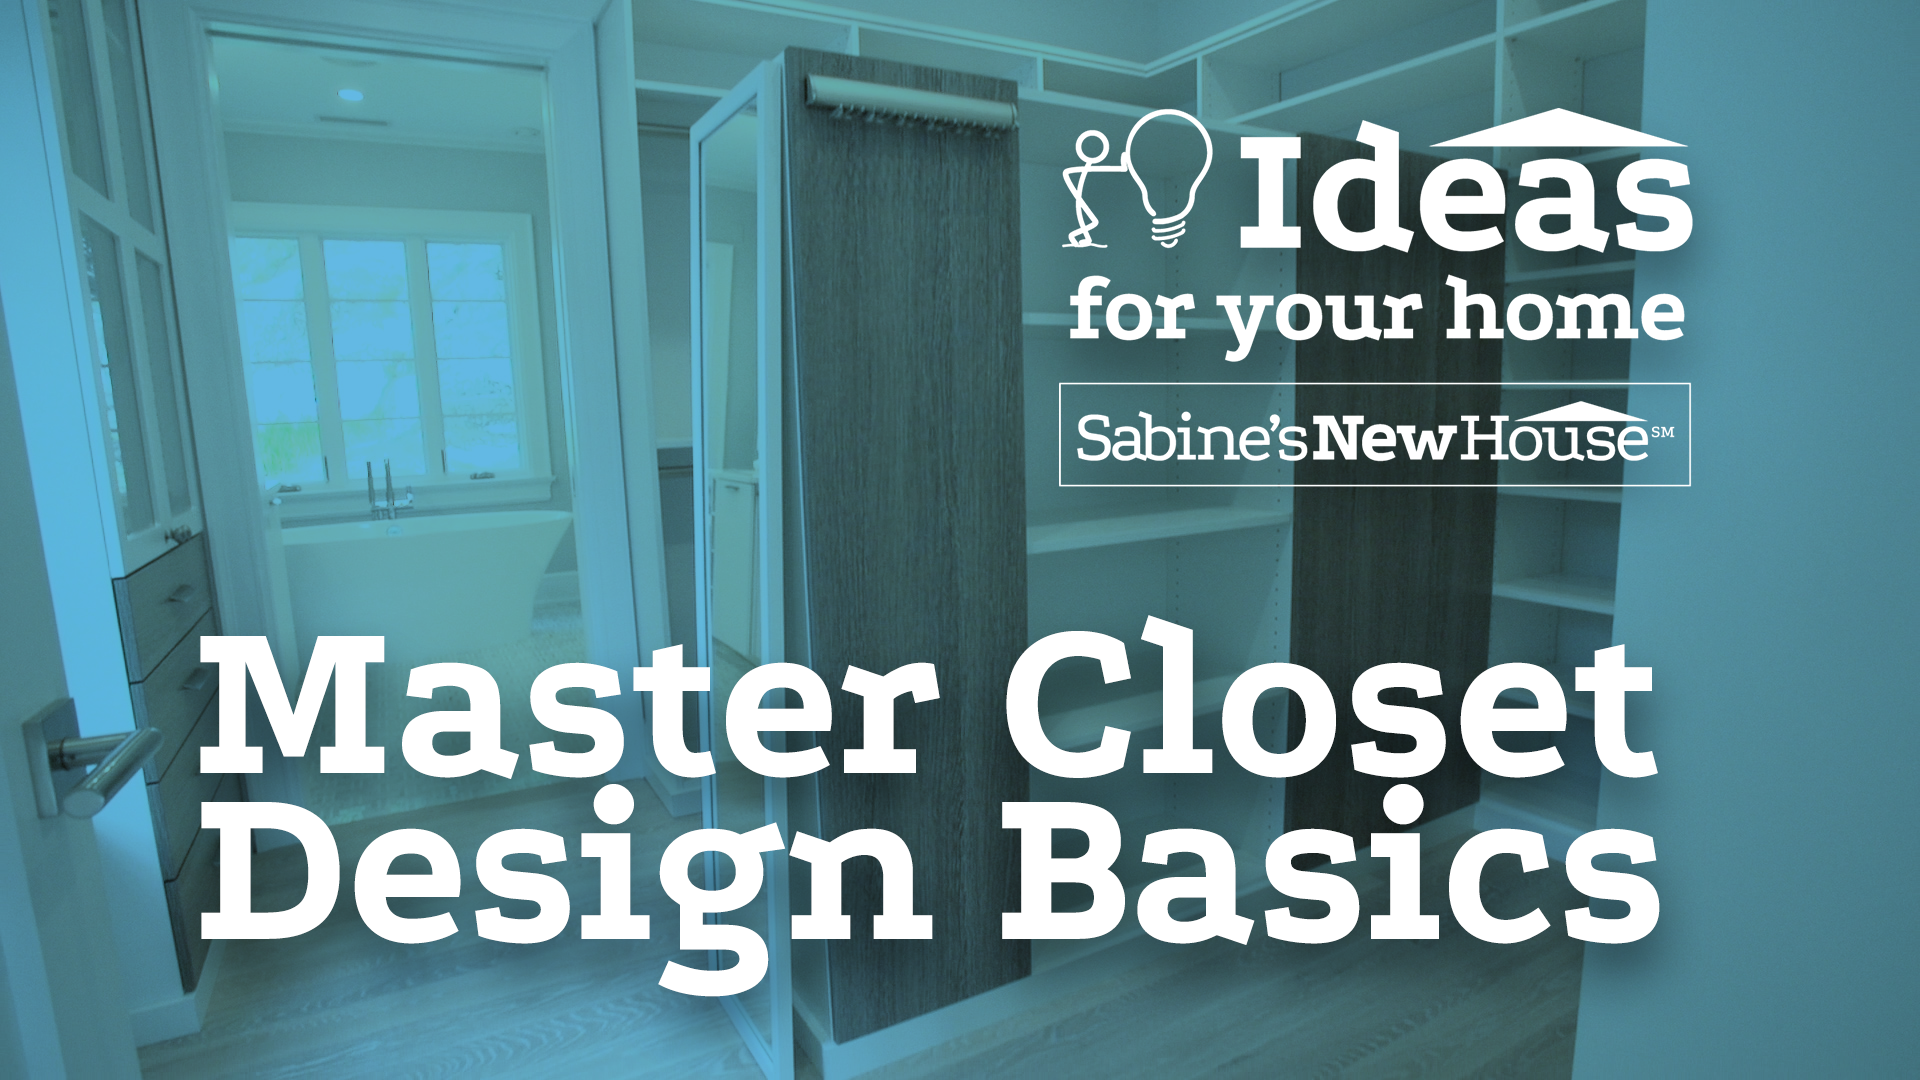 Master closet design basics sabine 39 s new house for Home building basics